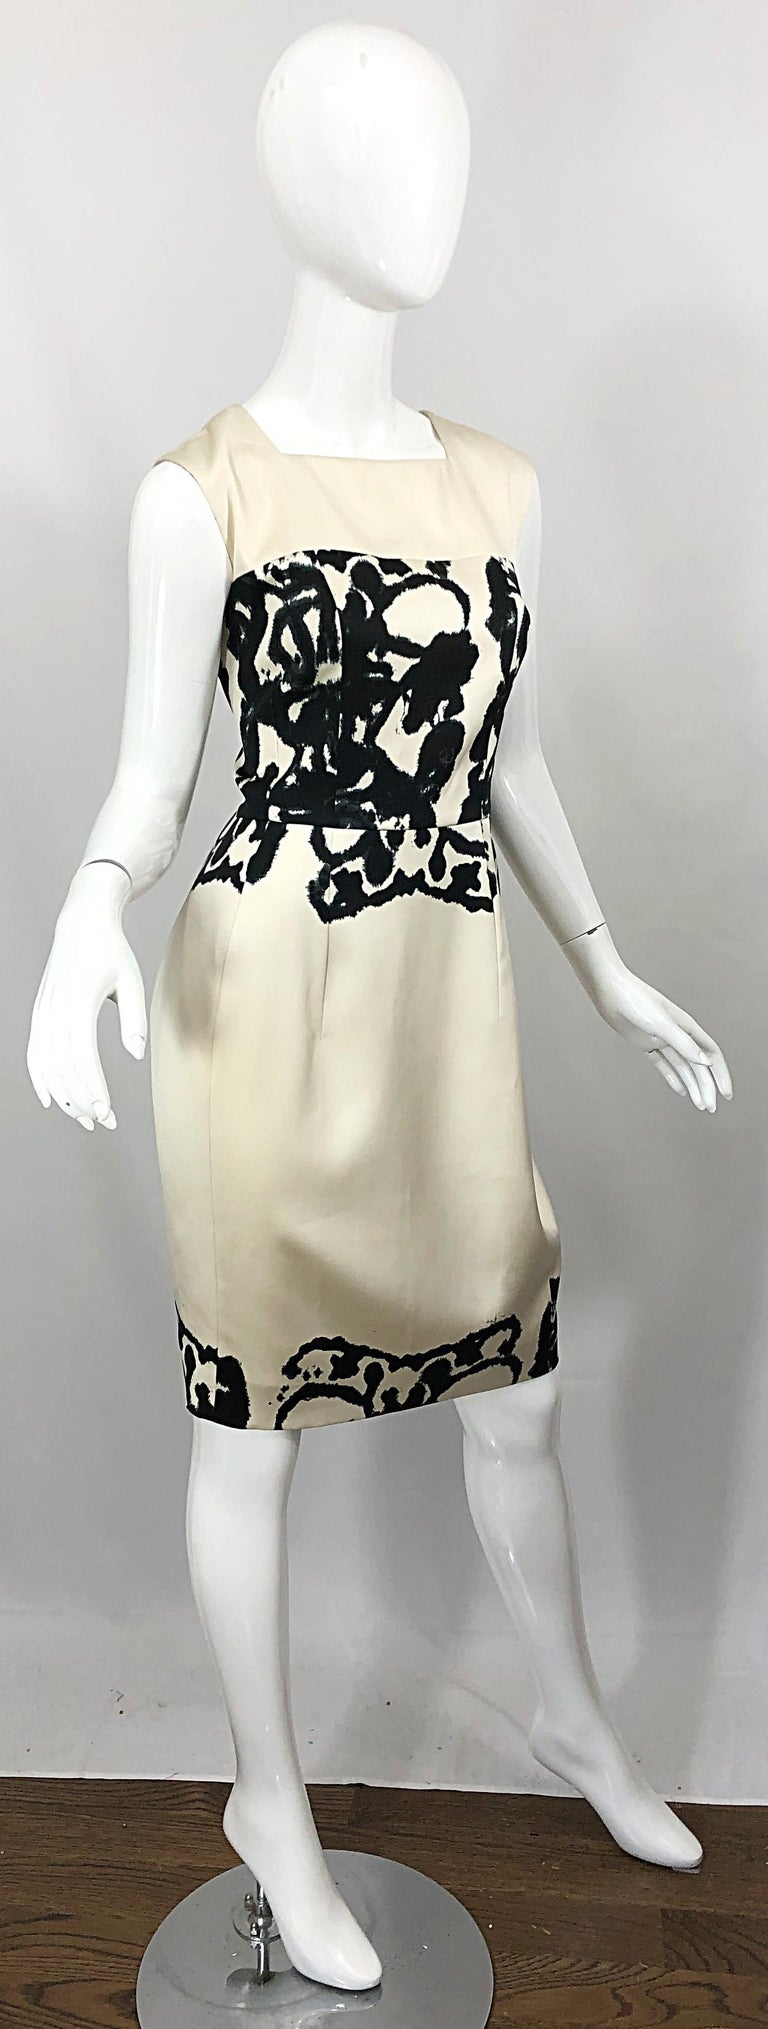 New Yves Saint Laurent Size 42 / 8-10 Ivory and Black Abstract Print Silk Dress For Sale 9